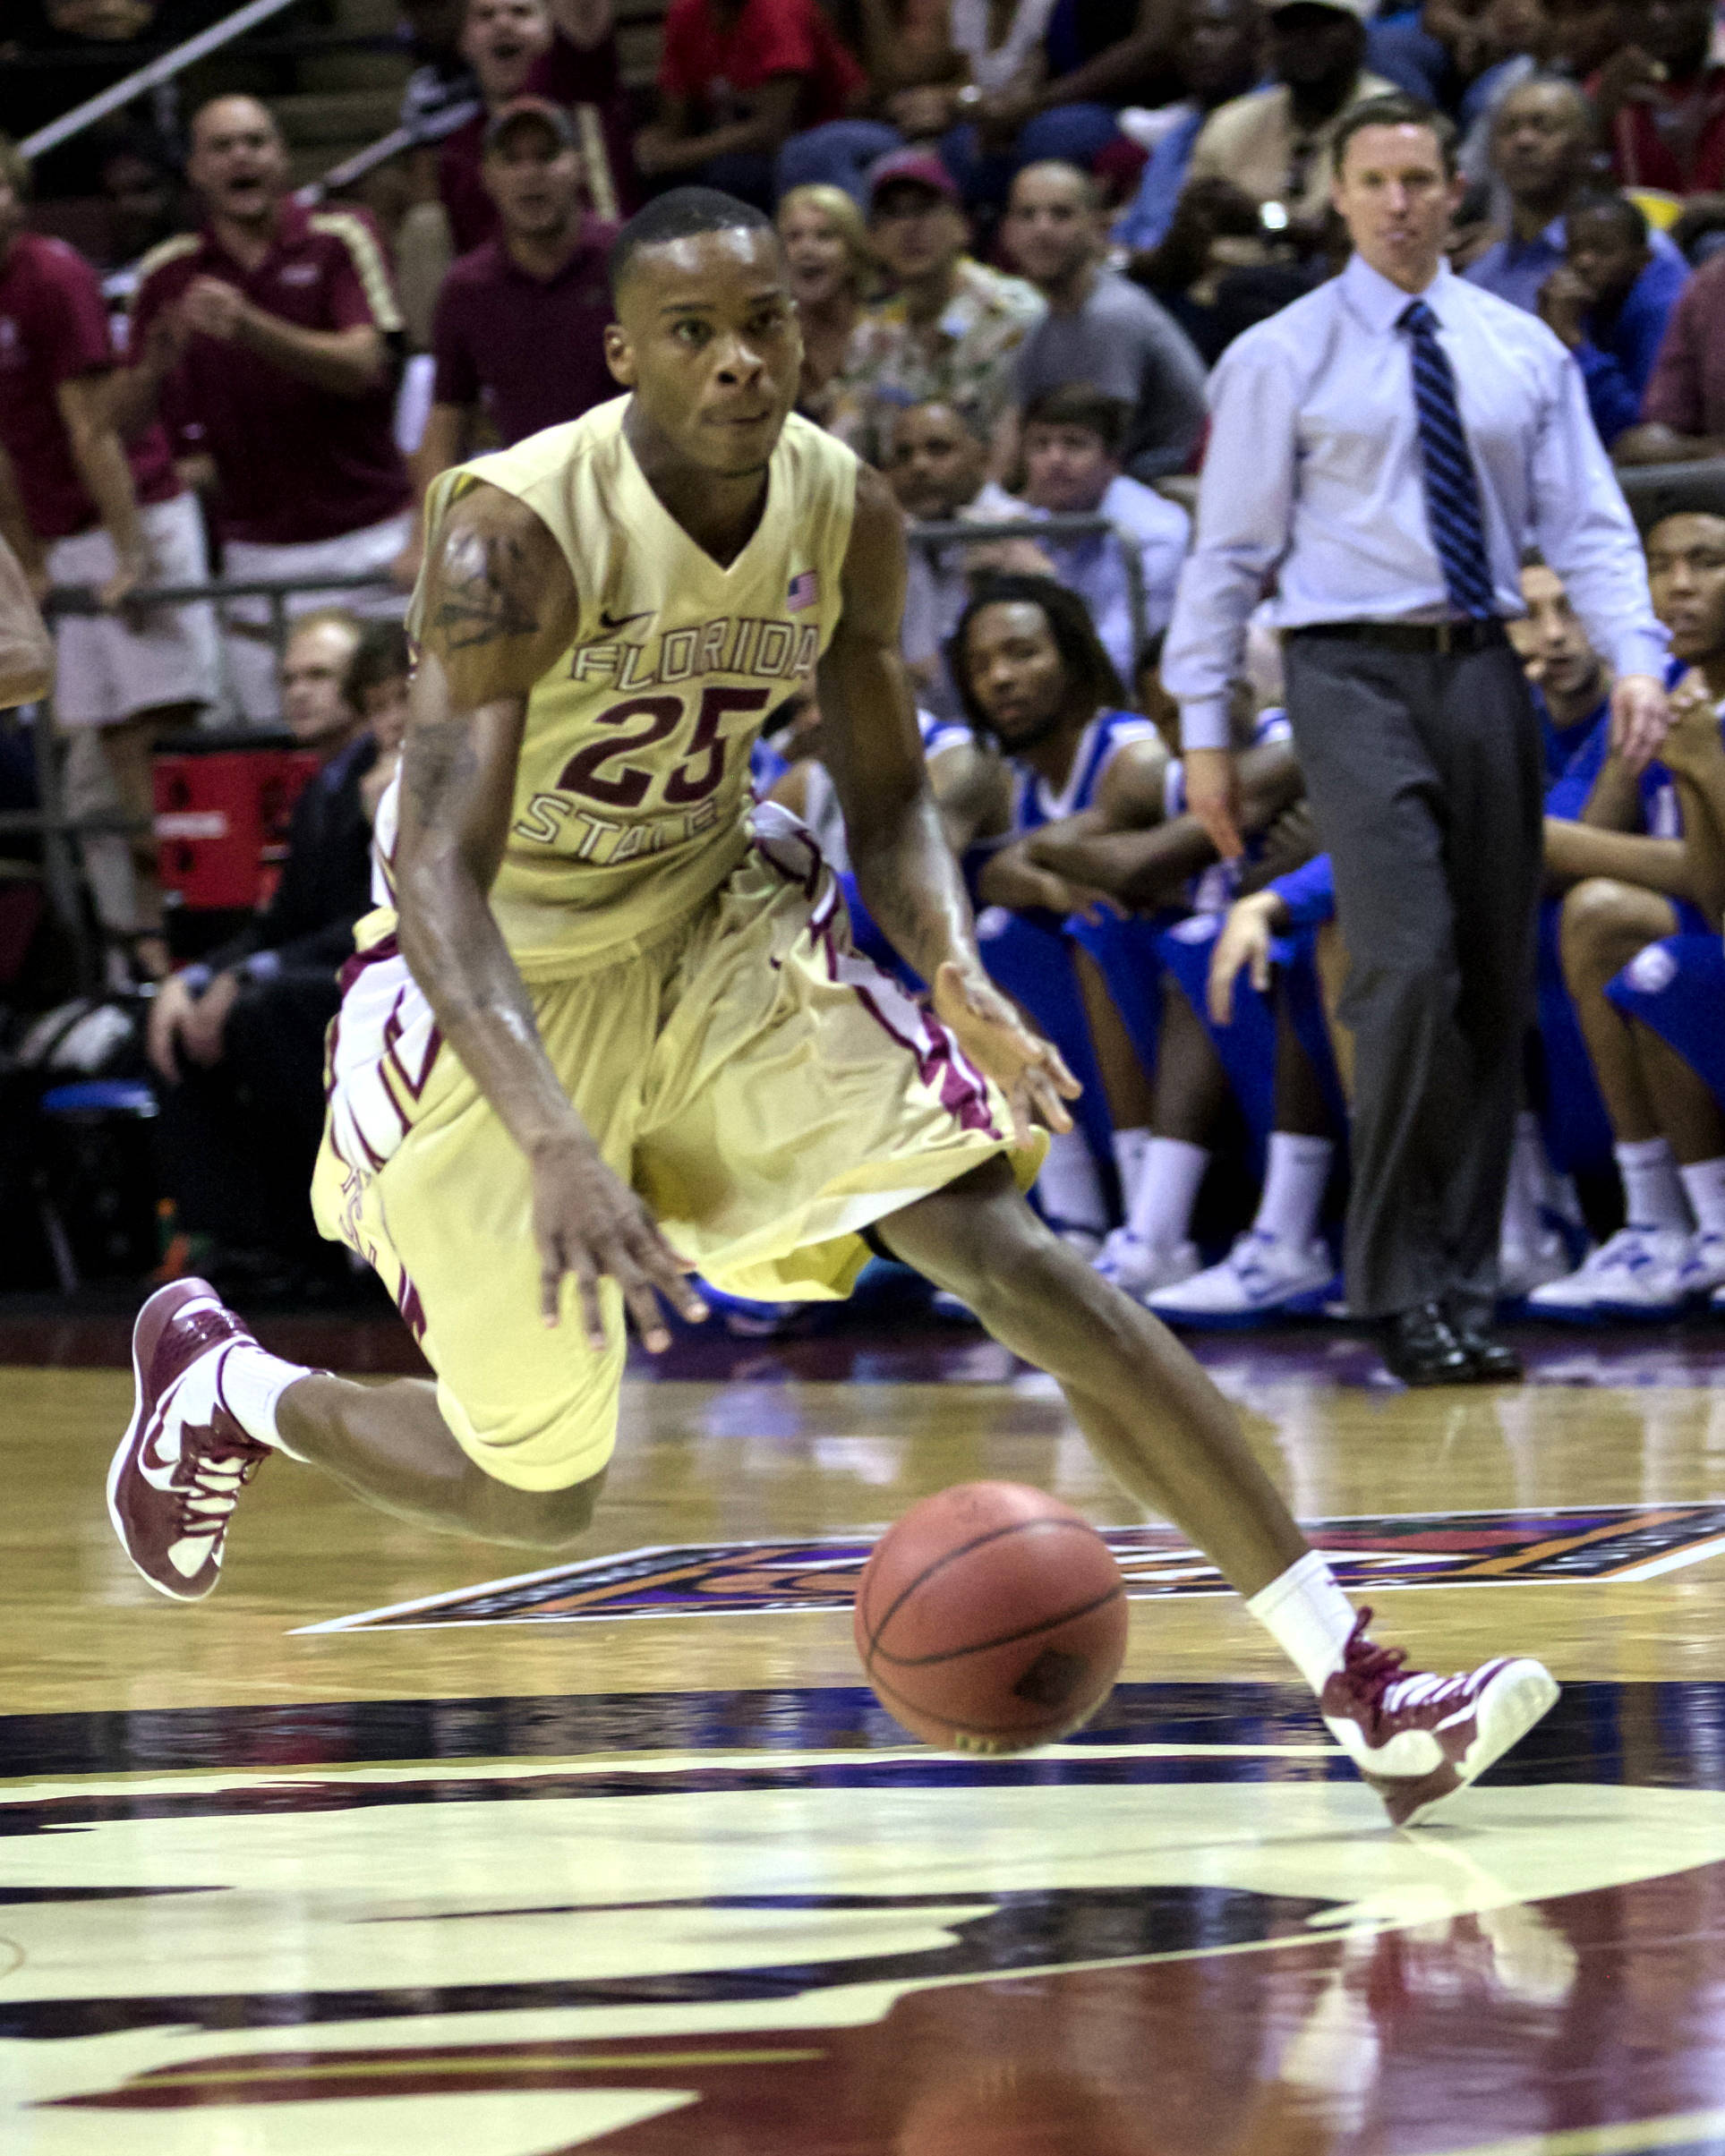 Aaron Thomas (25), NIT First Round, FSU vs Louisiana Tech, 03/19/13 . (Photo by Steve Musco)